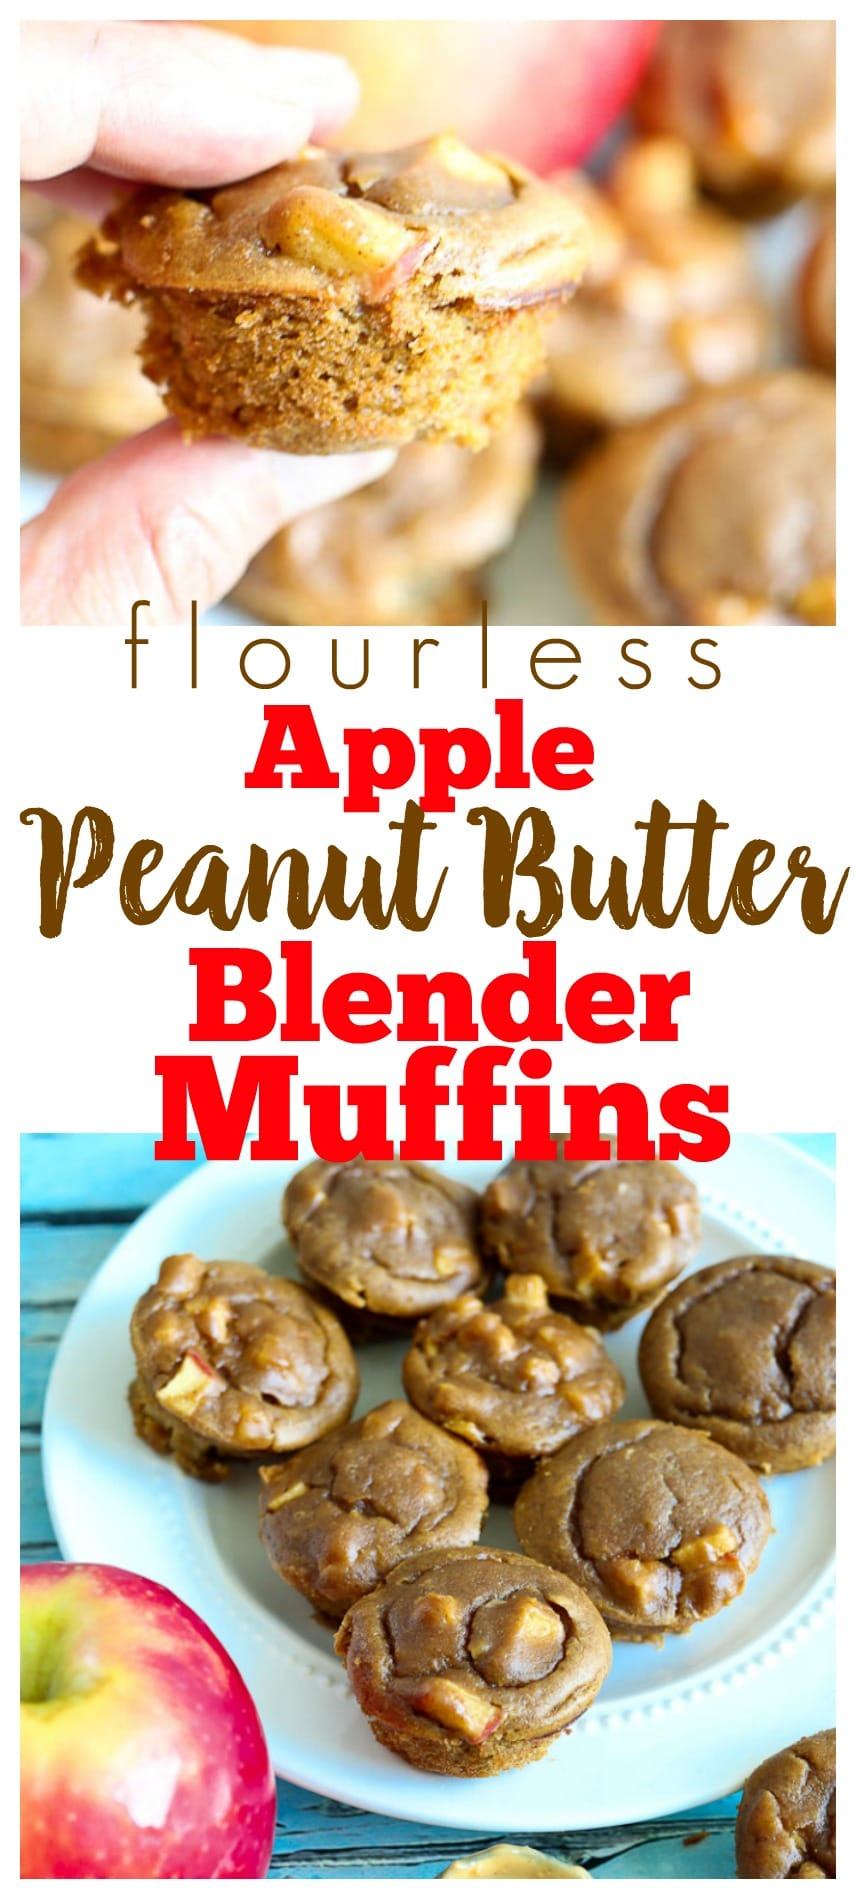 Flourless 15 minutes Apple Peanut Butter Muffins. Gluten-free, healthy, perfect back to school recipe